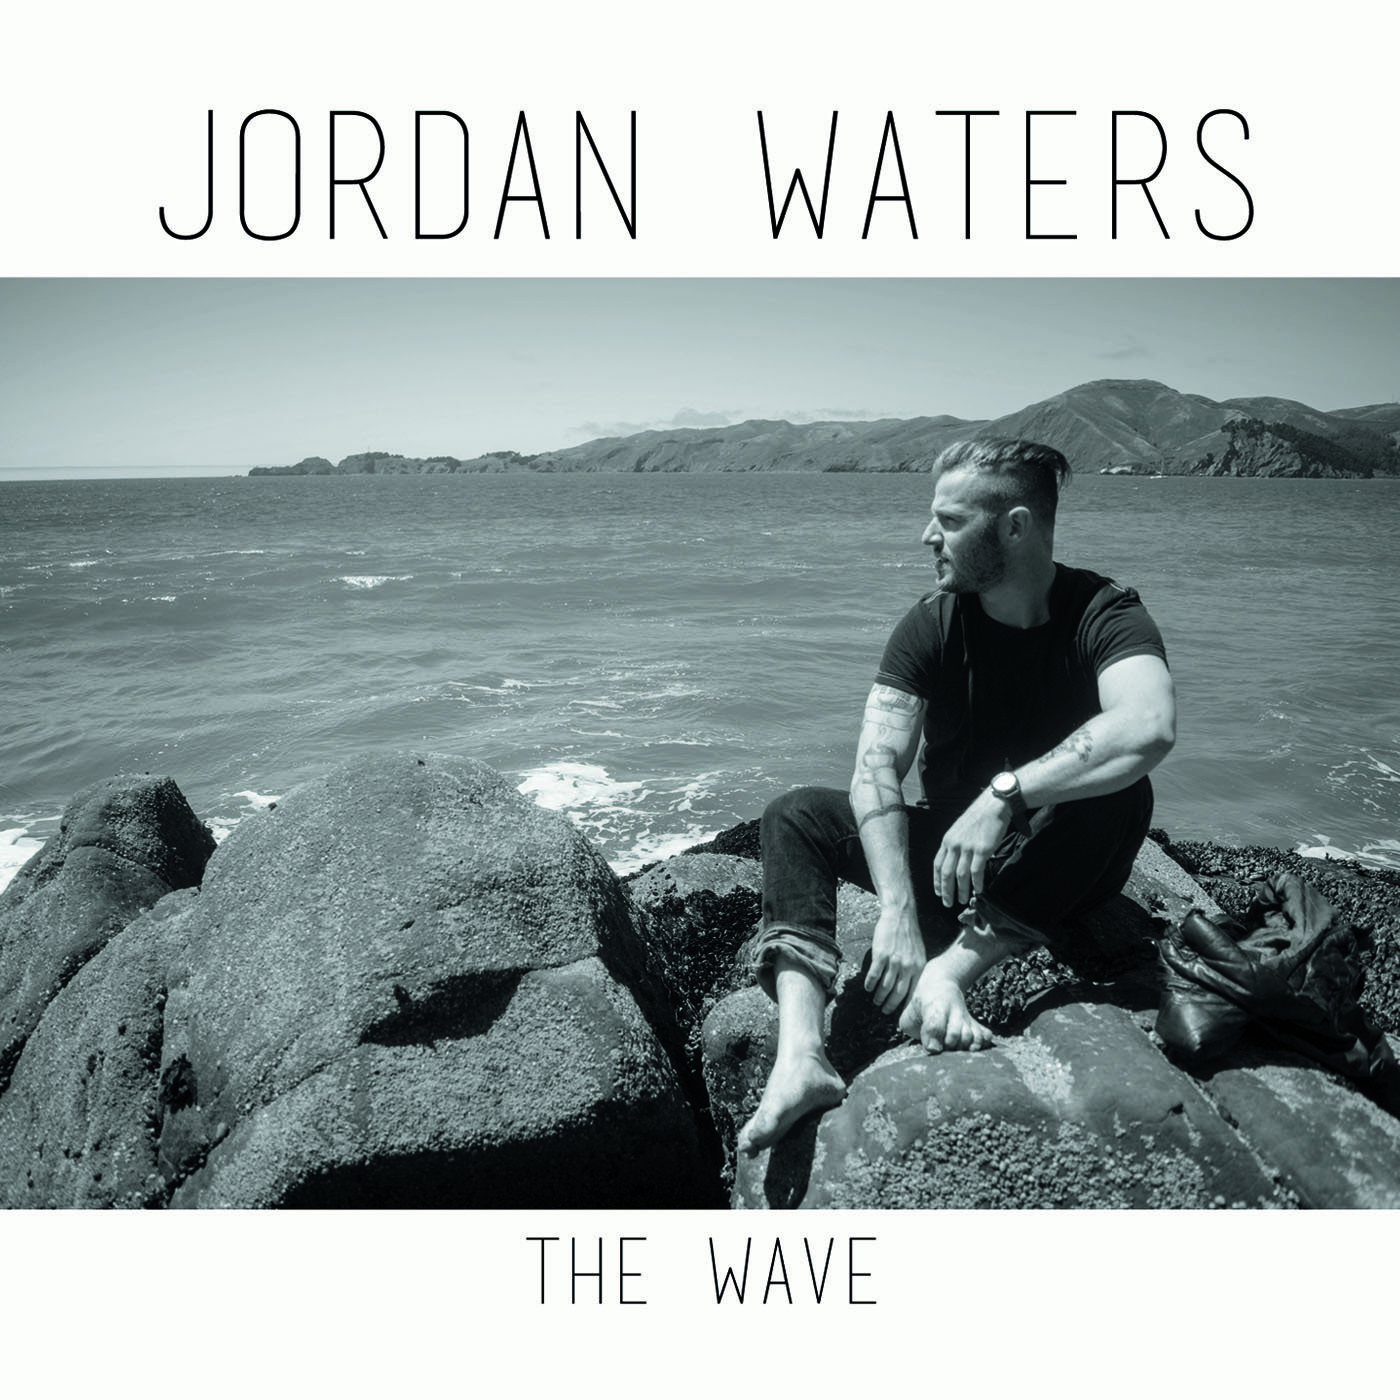 The Wave - CD Album QYYSBEU263UY4C5OSGXAN4JT